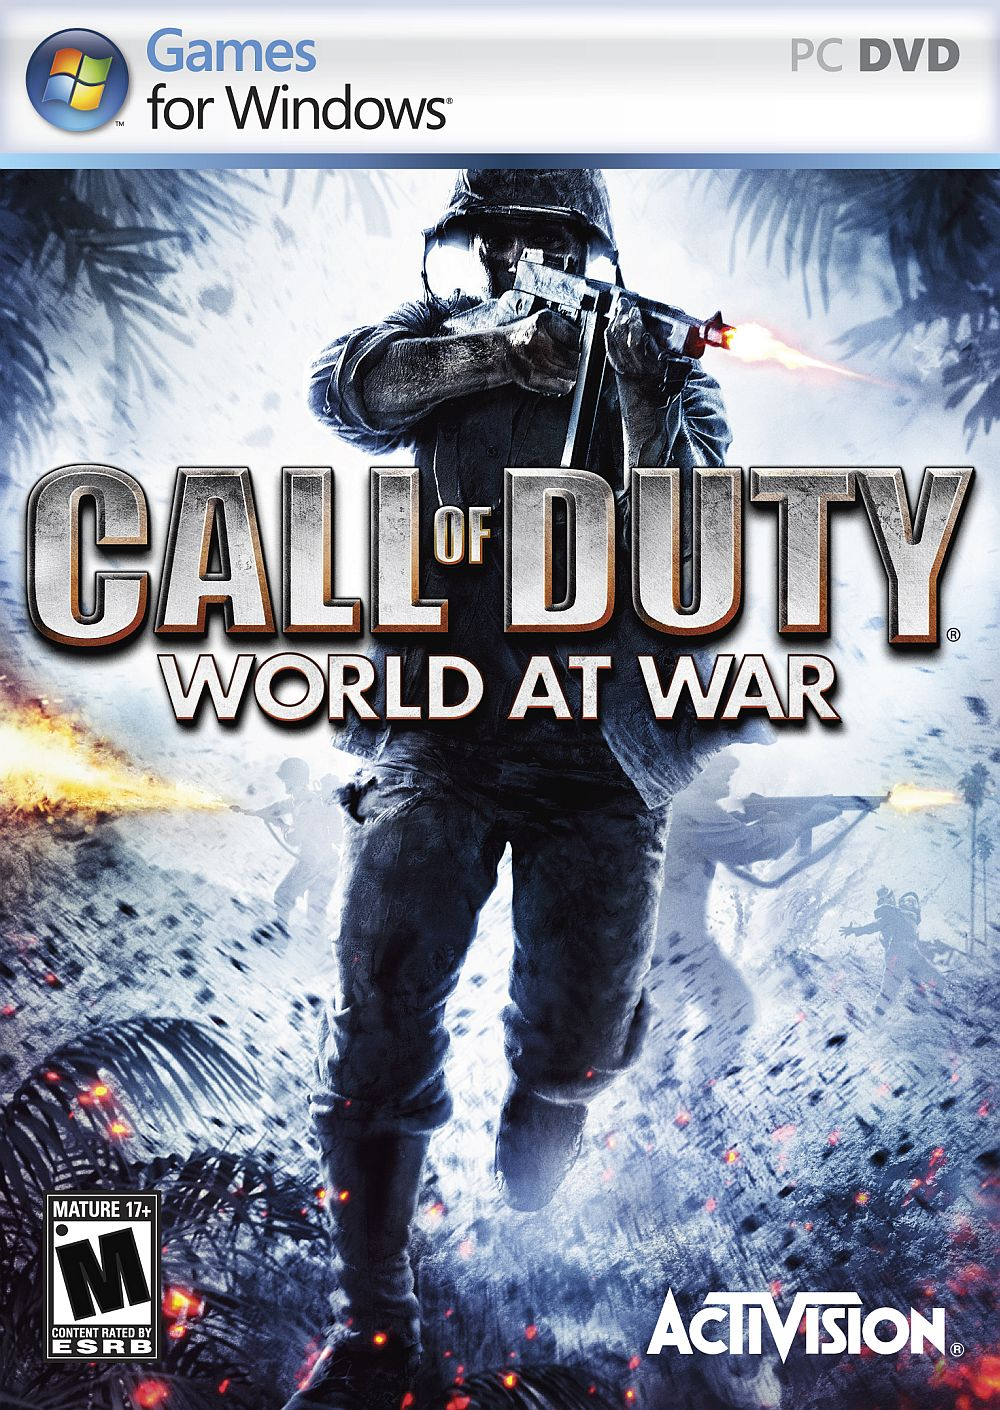 Call of Duty World at War Free Download, Call of Duty World at War Free Download